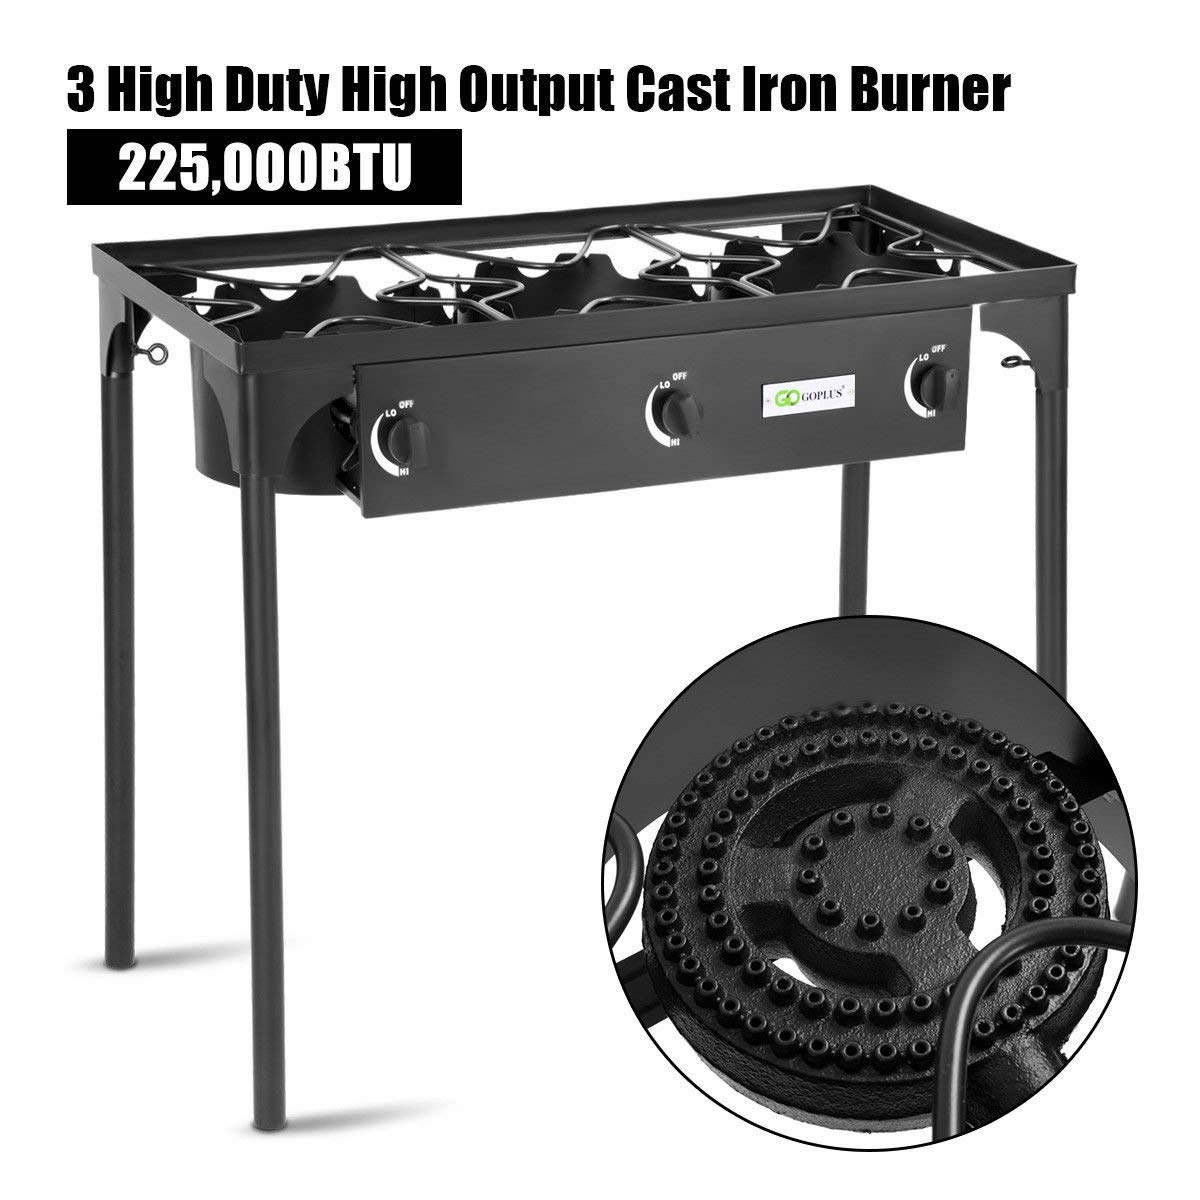 Goplus Outdoor Stove Portable Propane Gas Cooker Iron Cast Patio Burner w/Detachable Legs for Camp Cooking (3-Burner 225,000-BTU) by Goplus (Image #4)